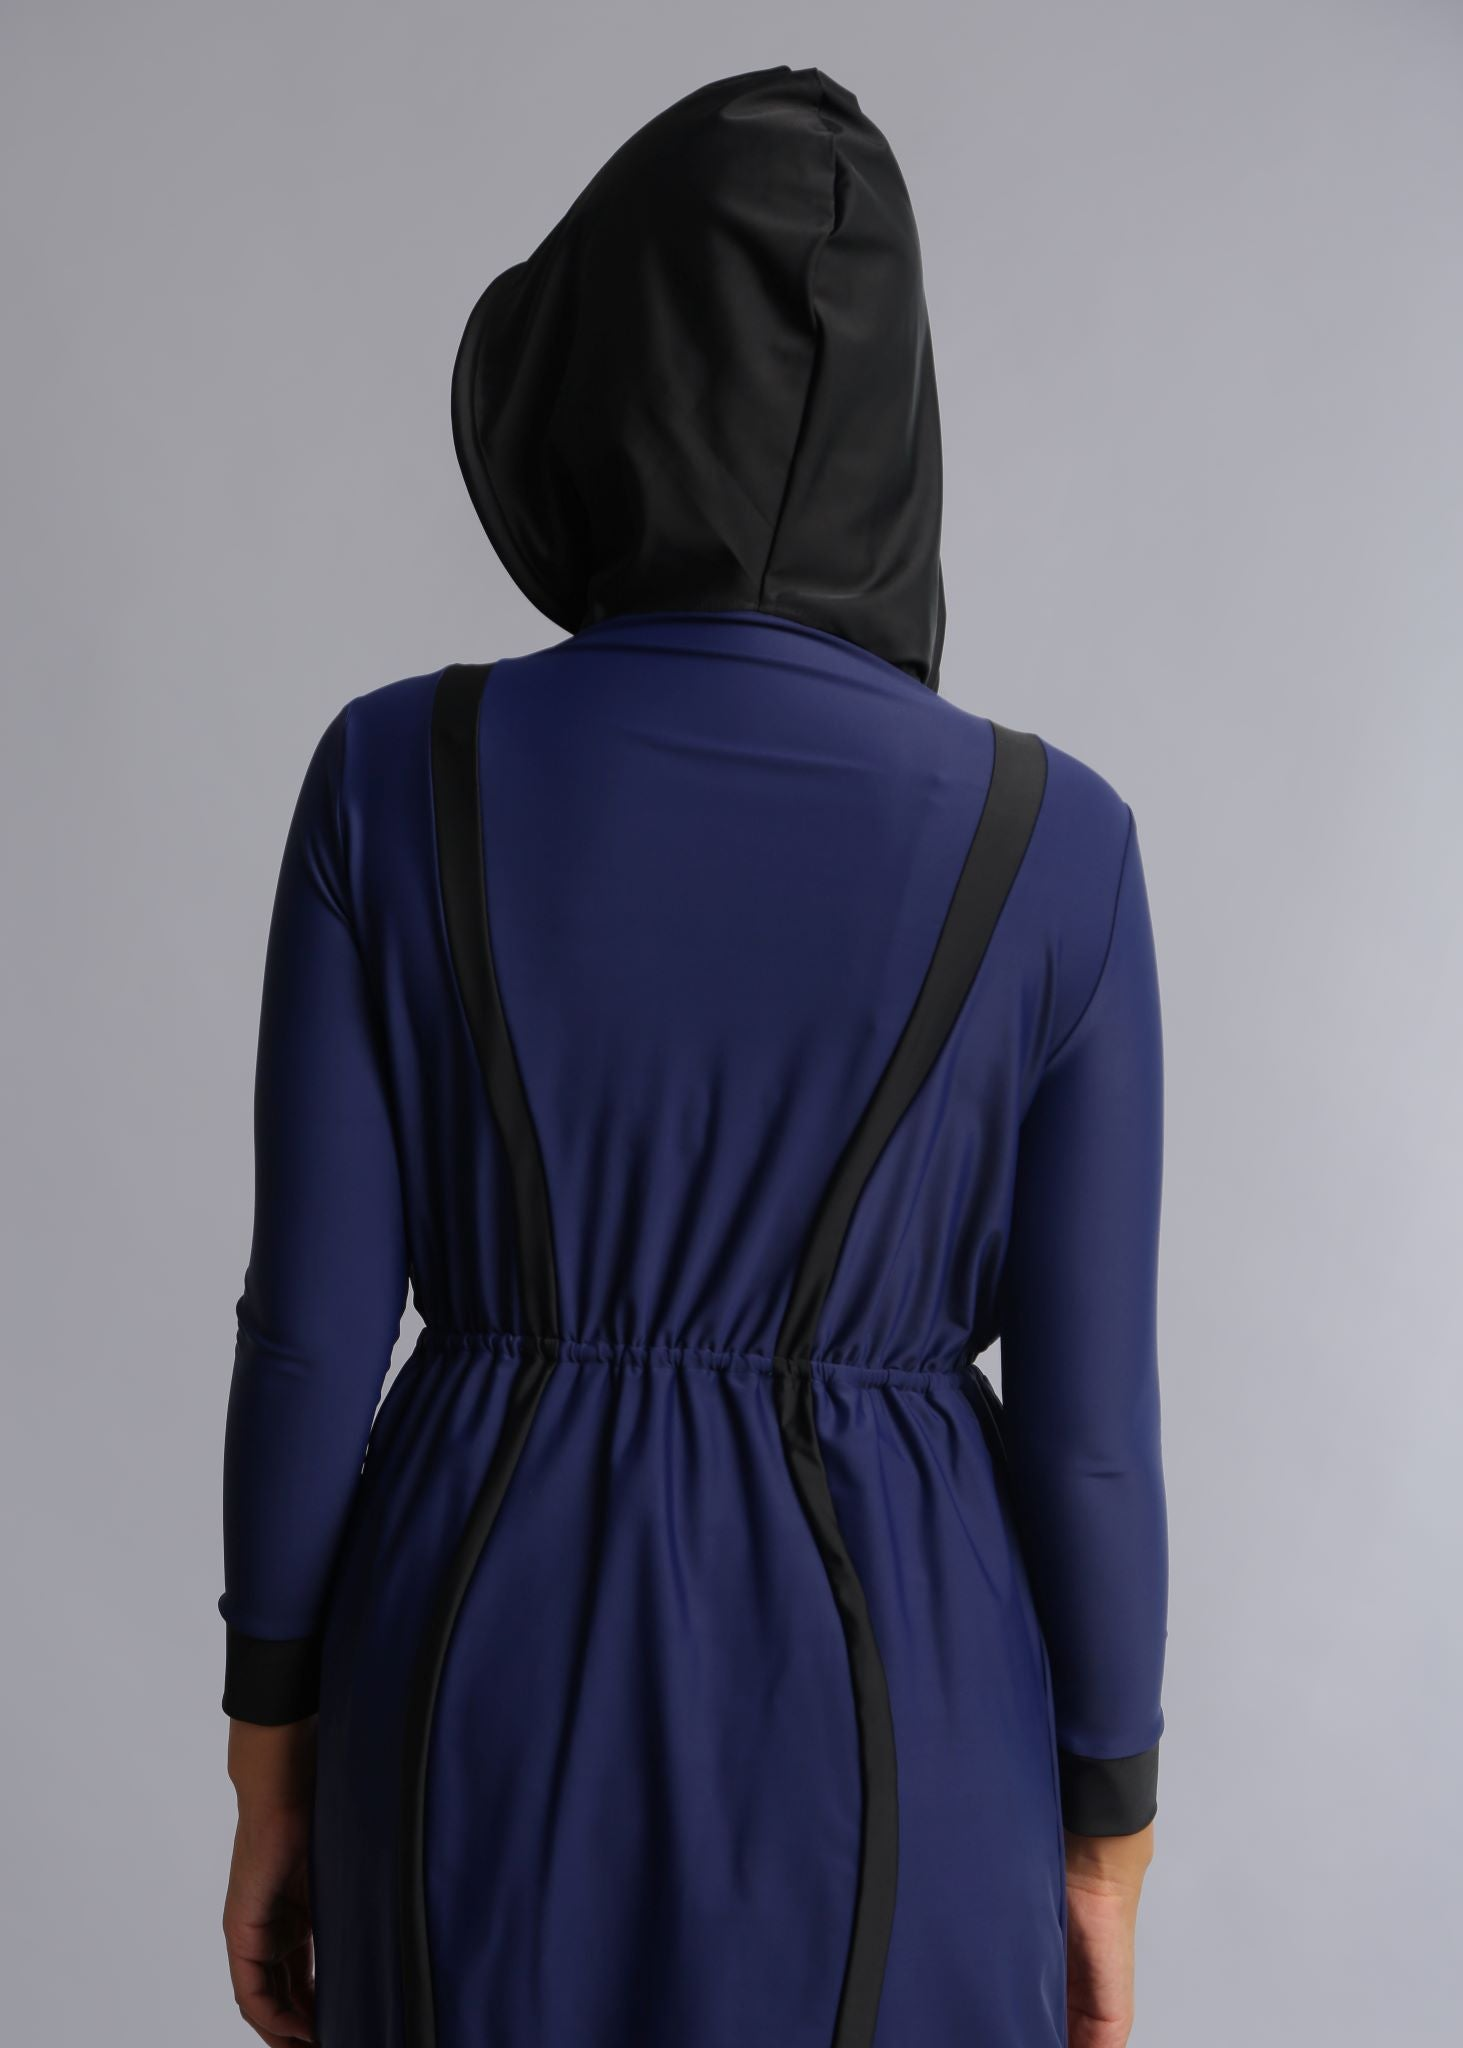 Taali - Twilight Blue/Black